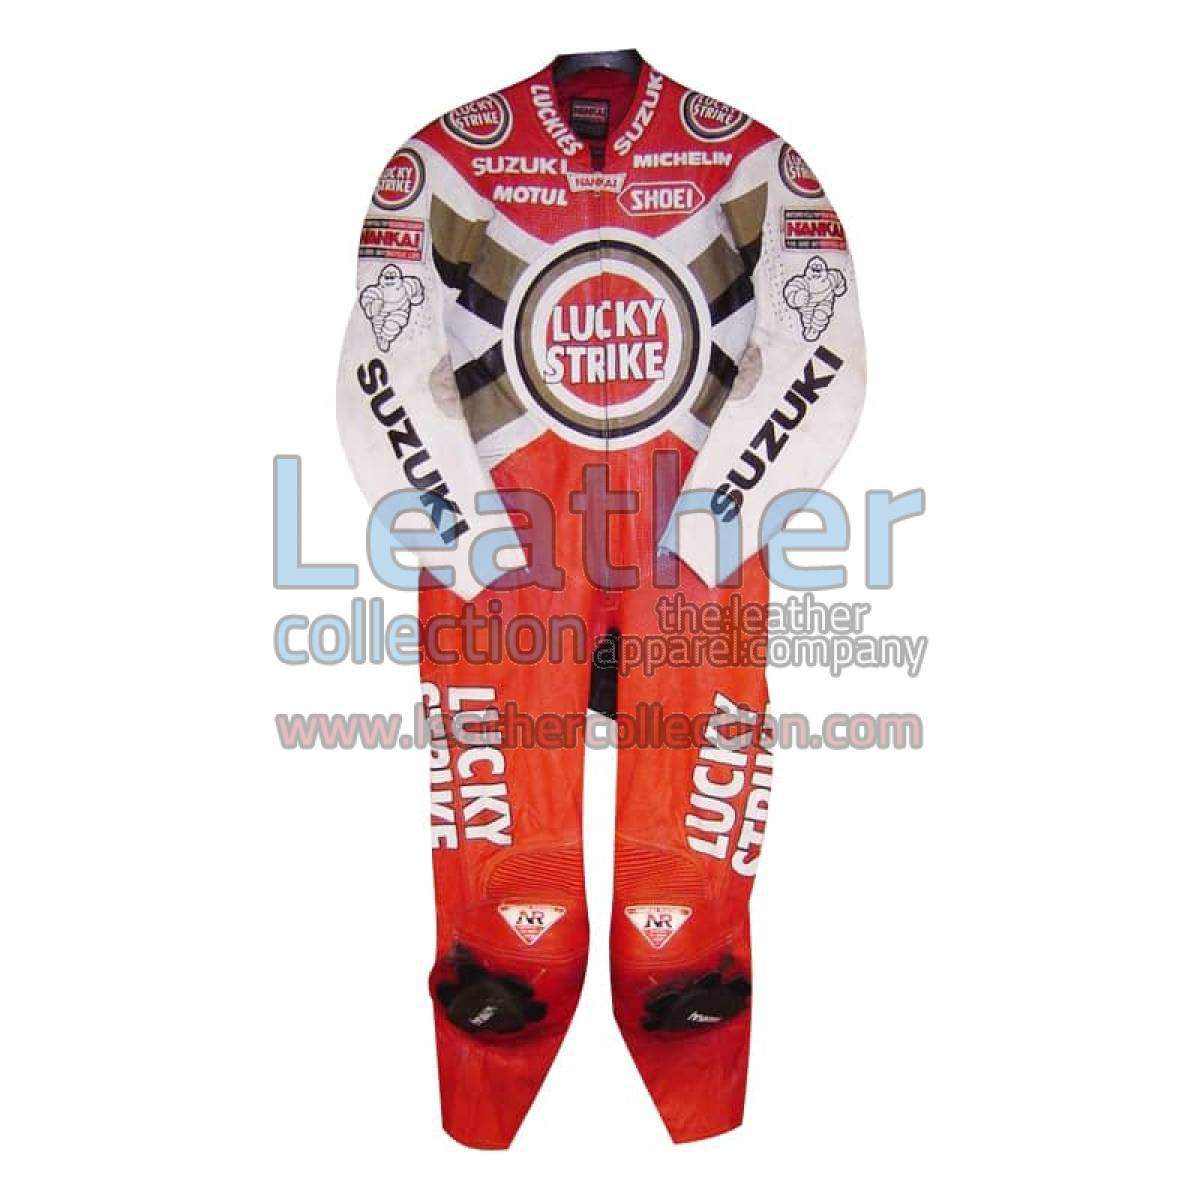 Daryl Beattie Suzuki Lucky Strike Leathers 1995 MotoGP